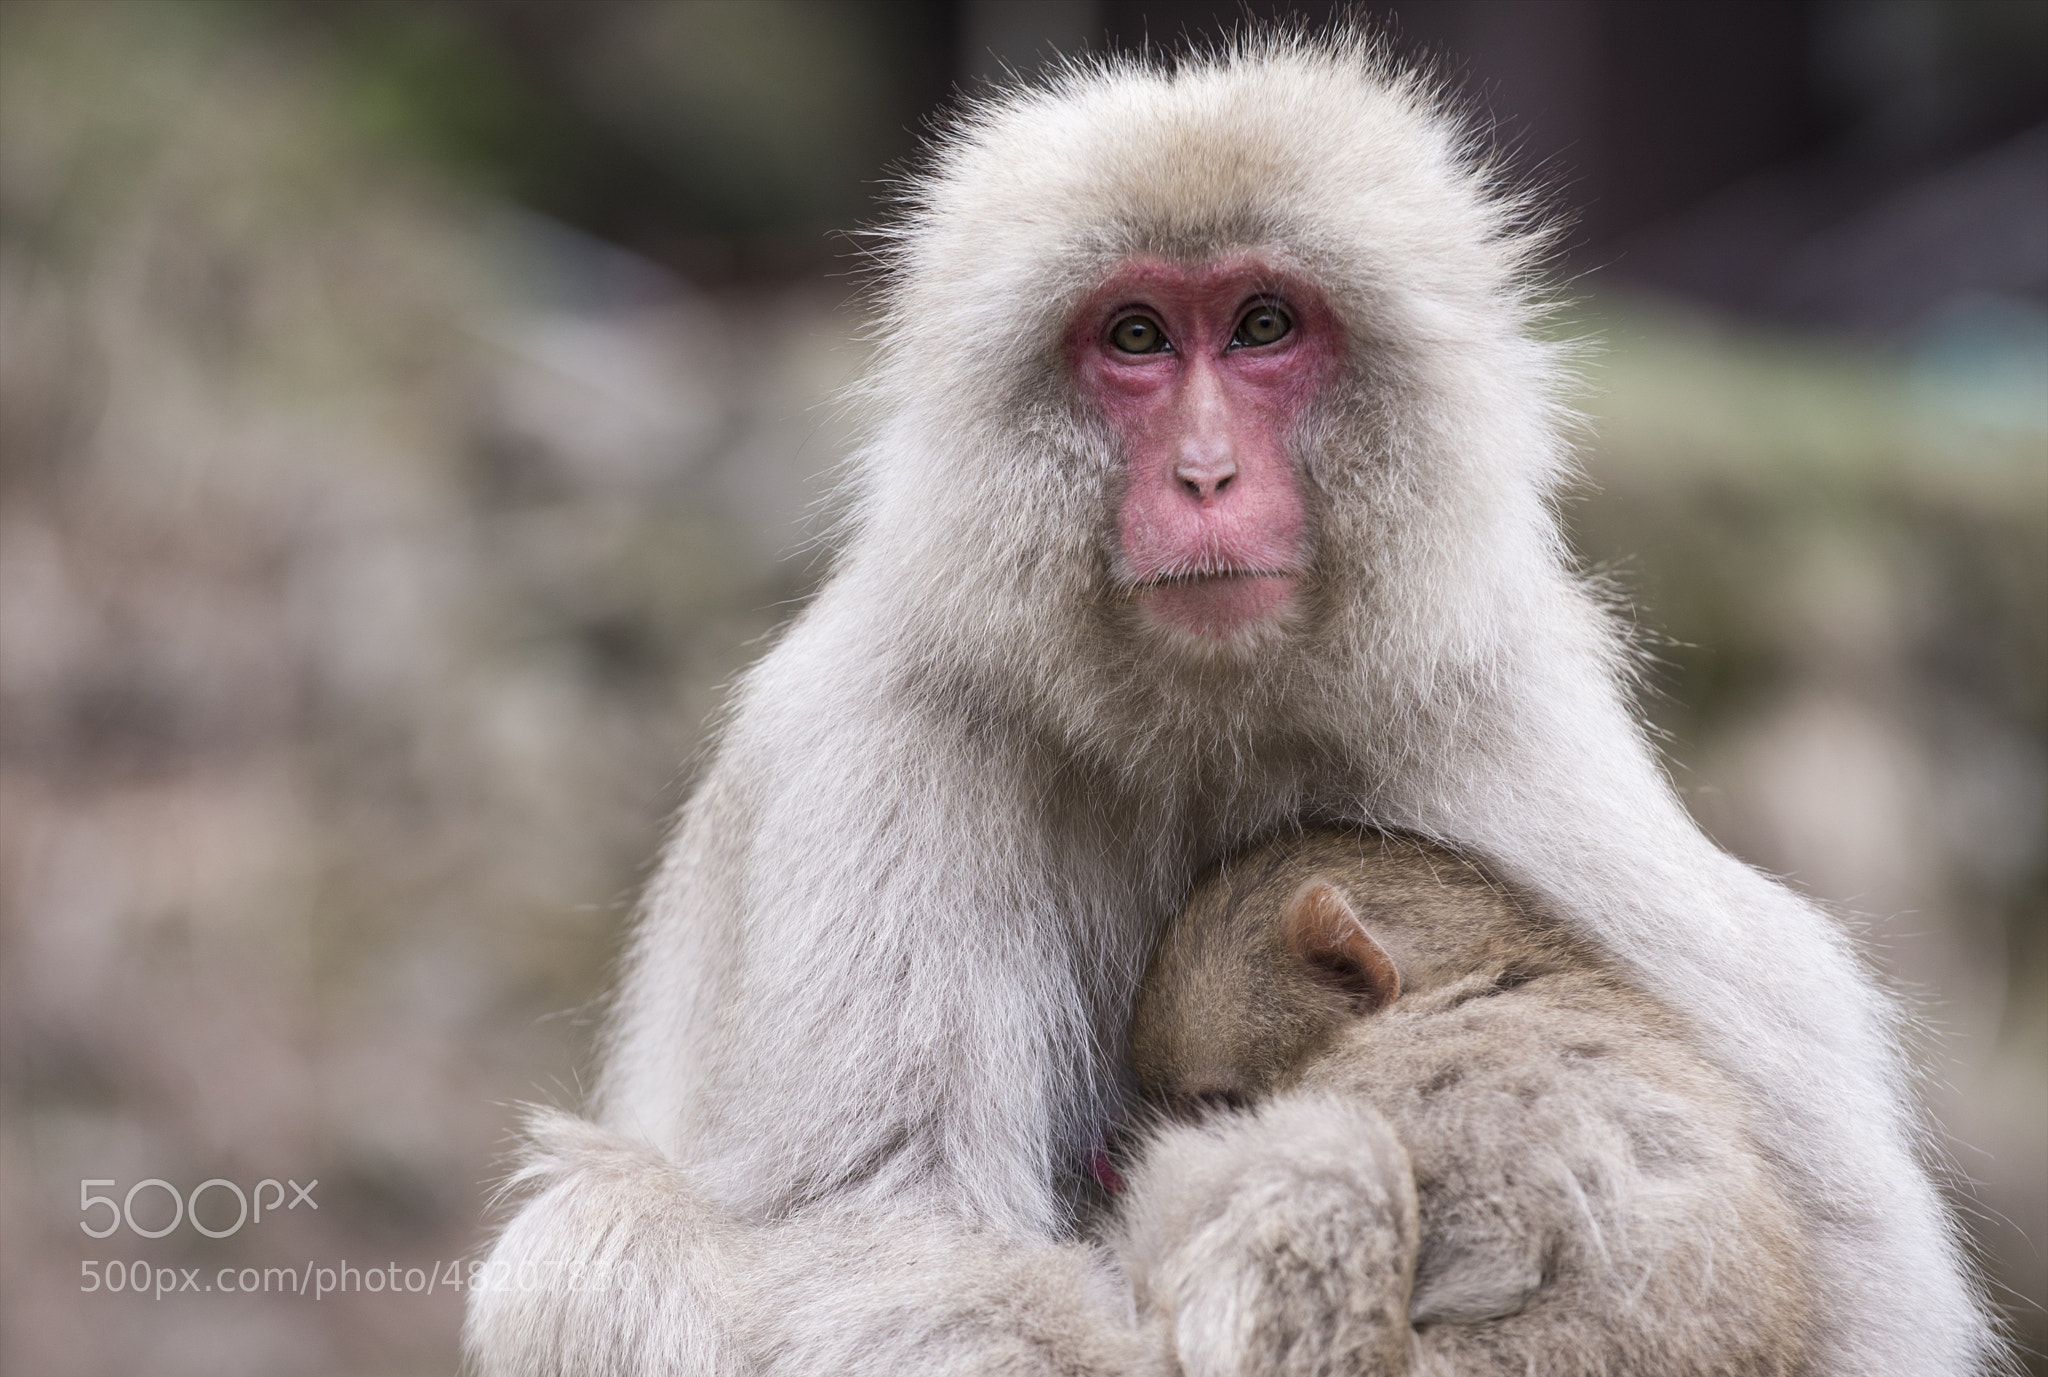 Photograph Mother Loves You! by hugh dornan on 500px